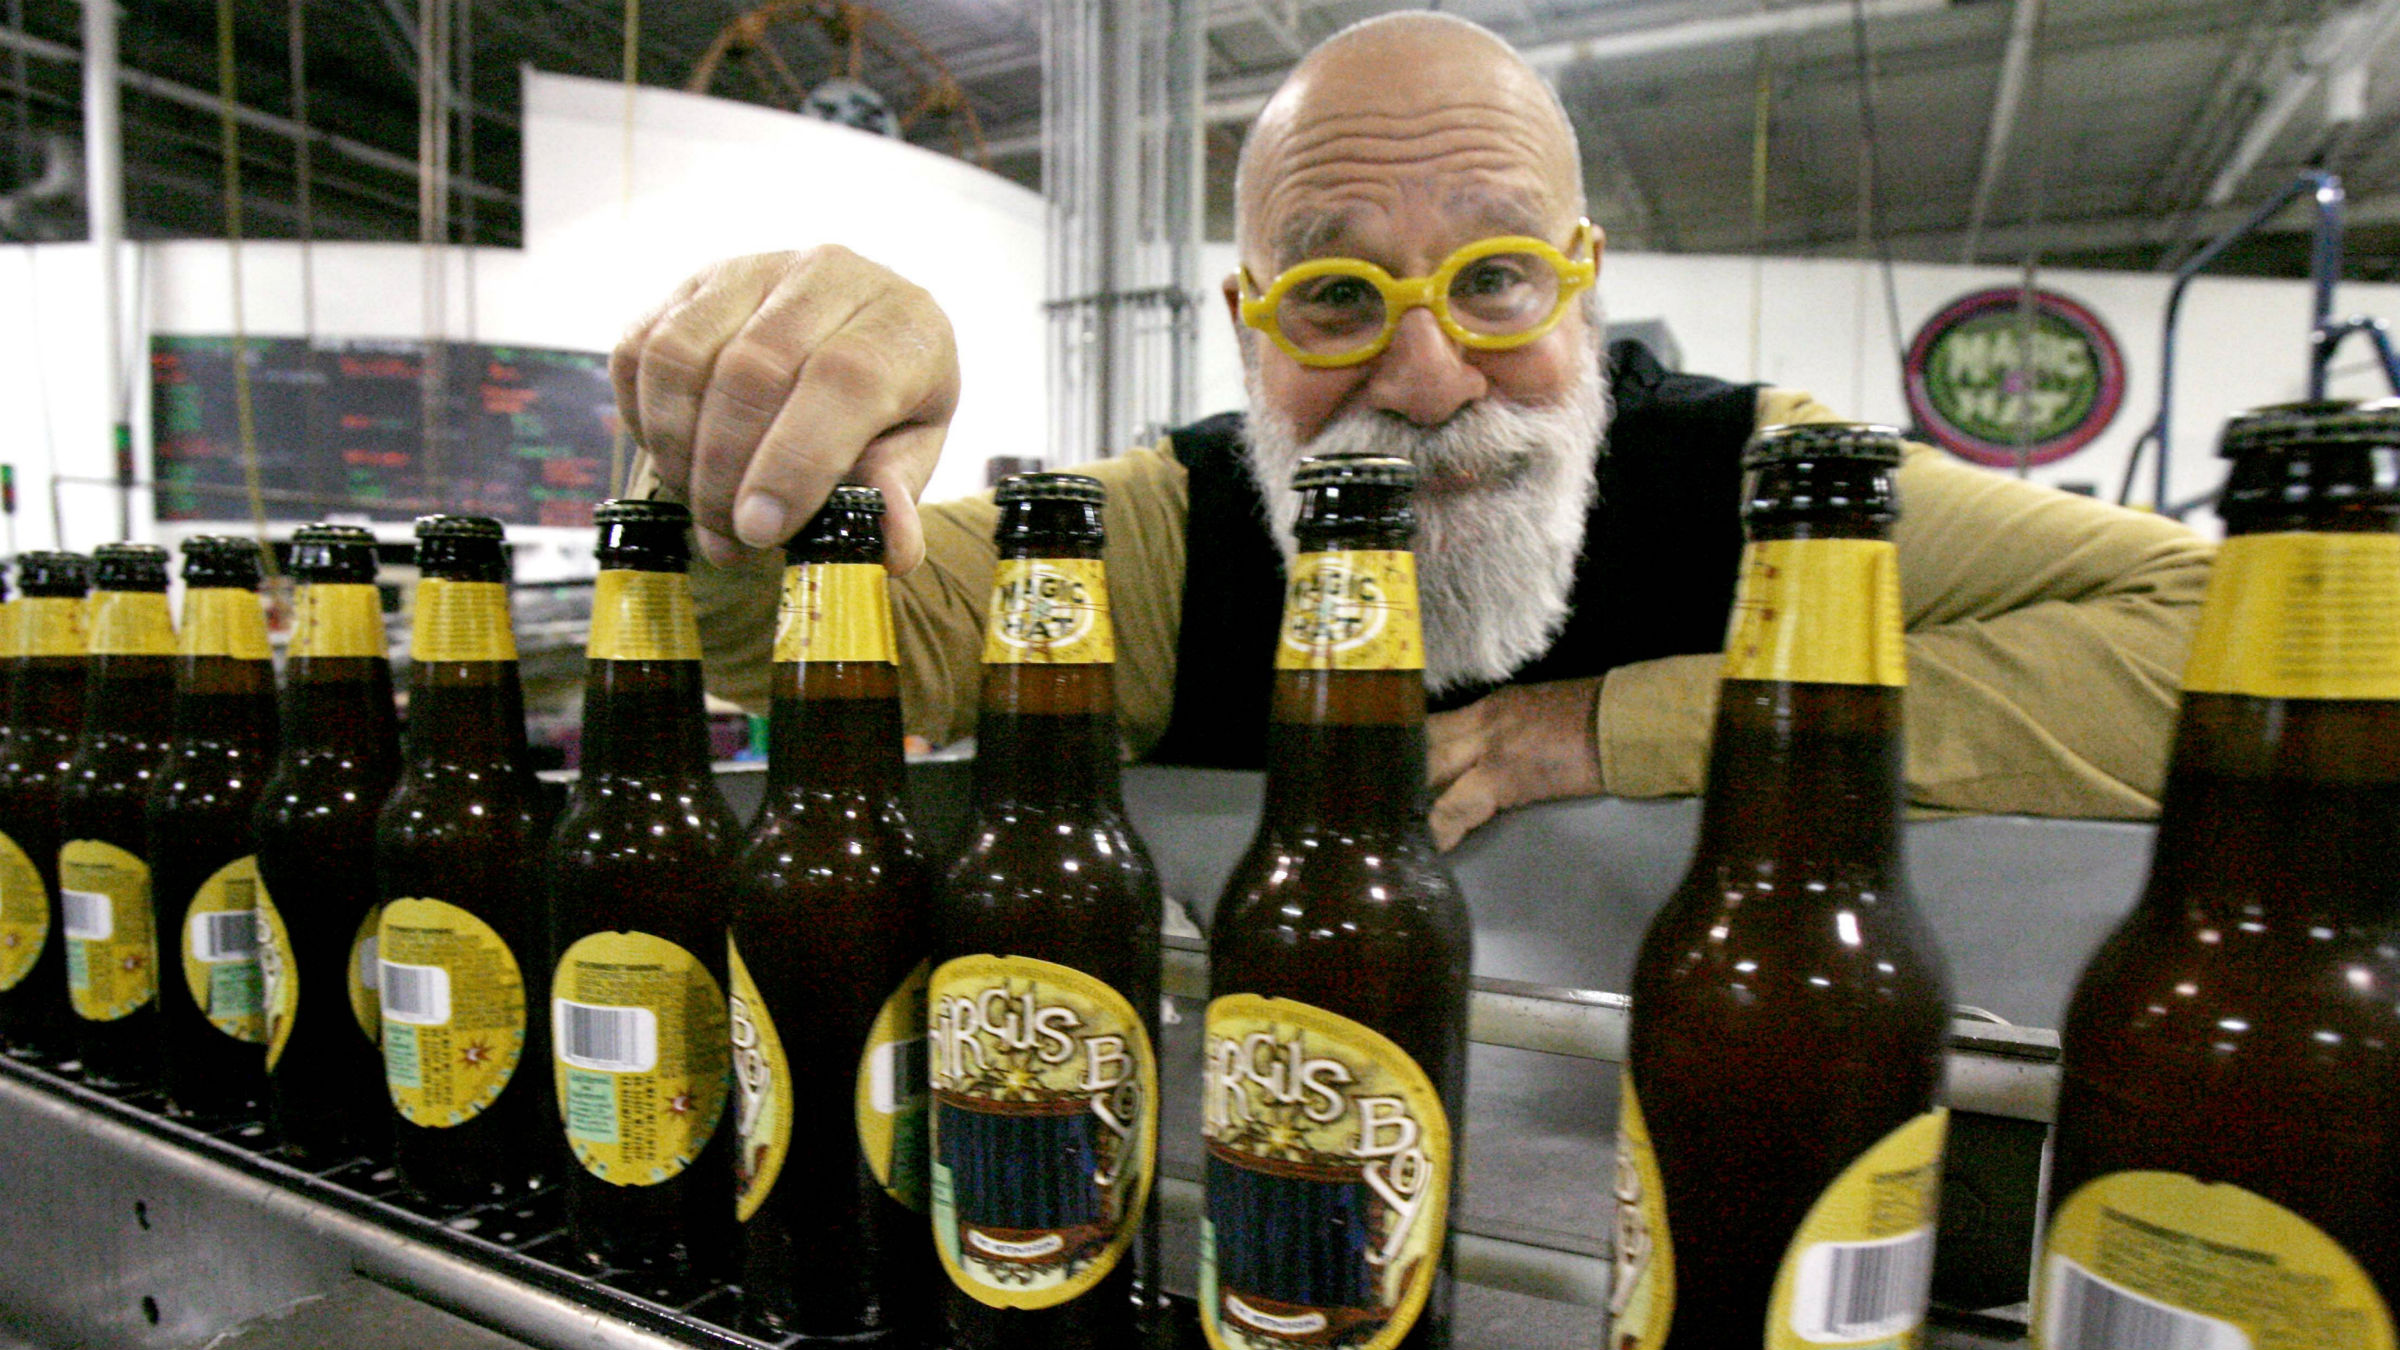 In this Dec. 6, 2007 file photo, CEO Alan Newman checks bottles on the production line at Magic Hat Brewery in South Burlington, Vt. Magic Hat Brewing Co., Vermont's largest craft brewery, has been sold to North American Breweries, Inc. of Rochester, N.Y.